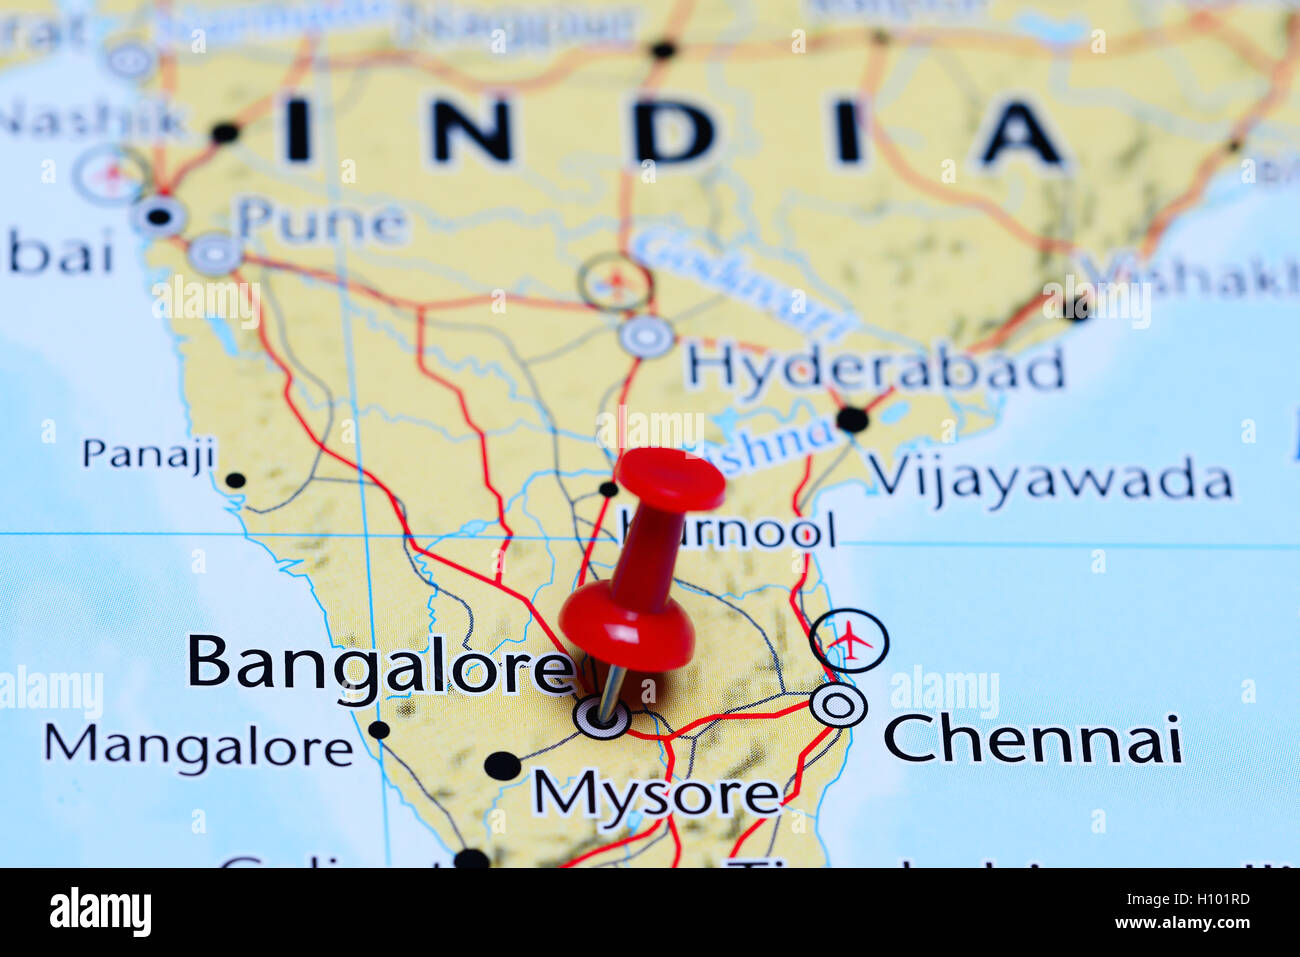 Bangalore pinned on a map of India Stock Photo: 121088673   Alamy